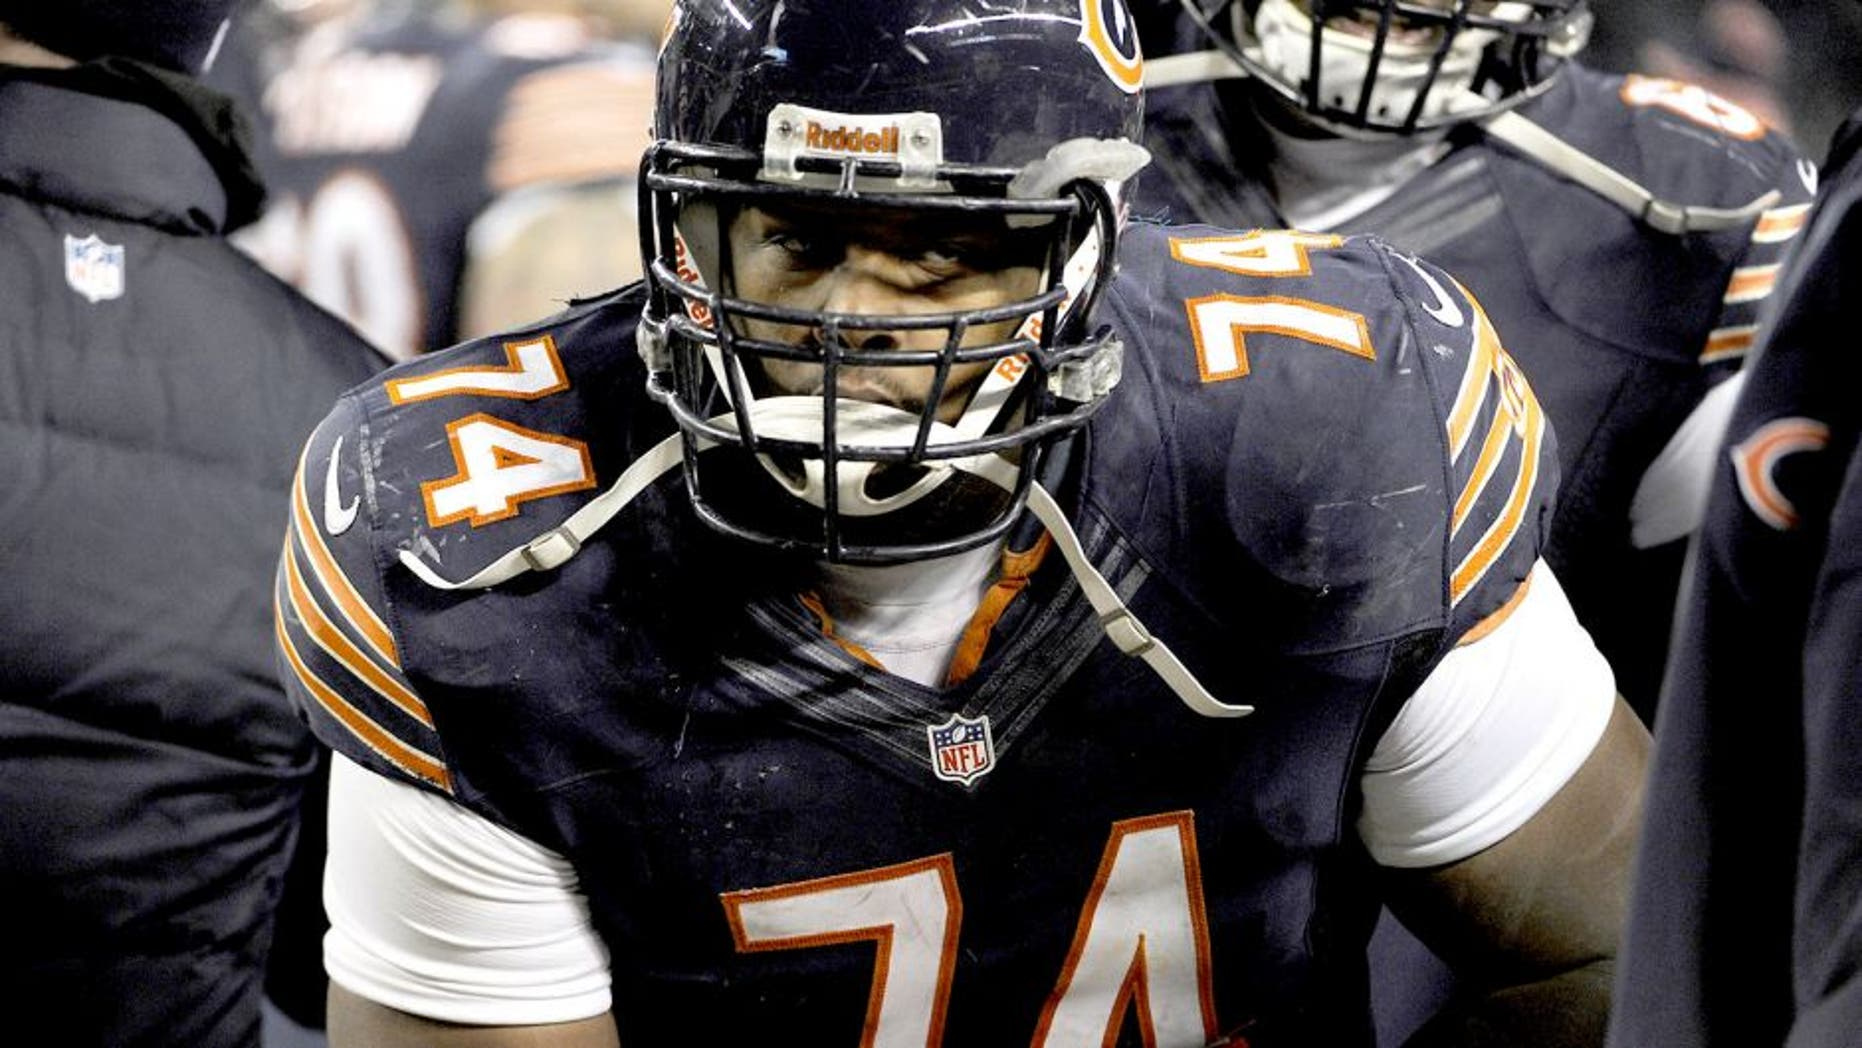 CHICAGO, IL - DECEMBER 9: Jermon Bushrod #74 of the Chicago Bears plays against the Dallas Cowboys on December 9, 2013 at Soldier Field in Chicago, Illinois. (Photo by David Banks/Getty Images)